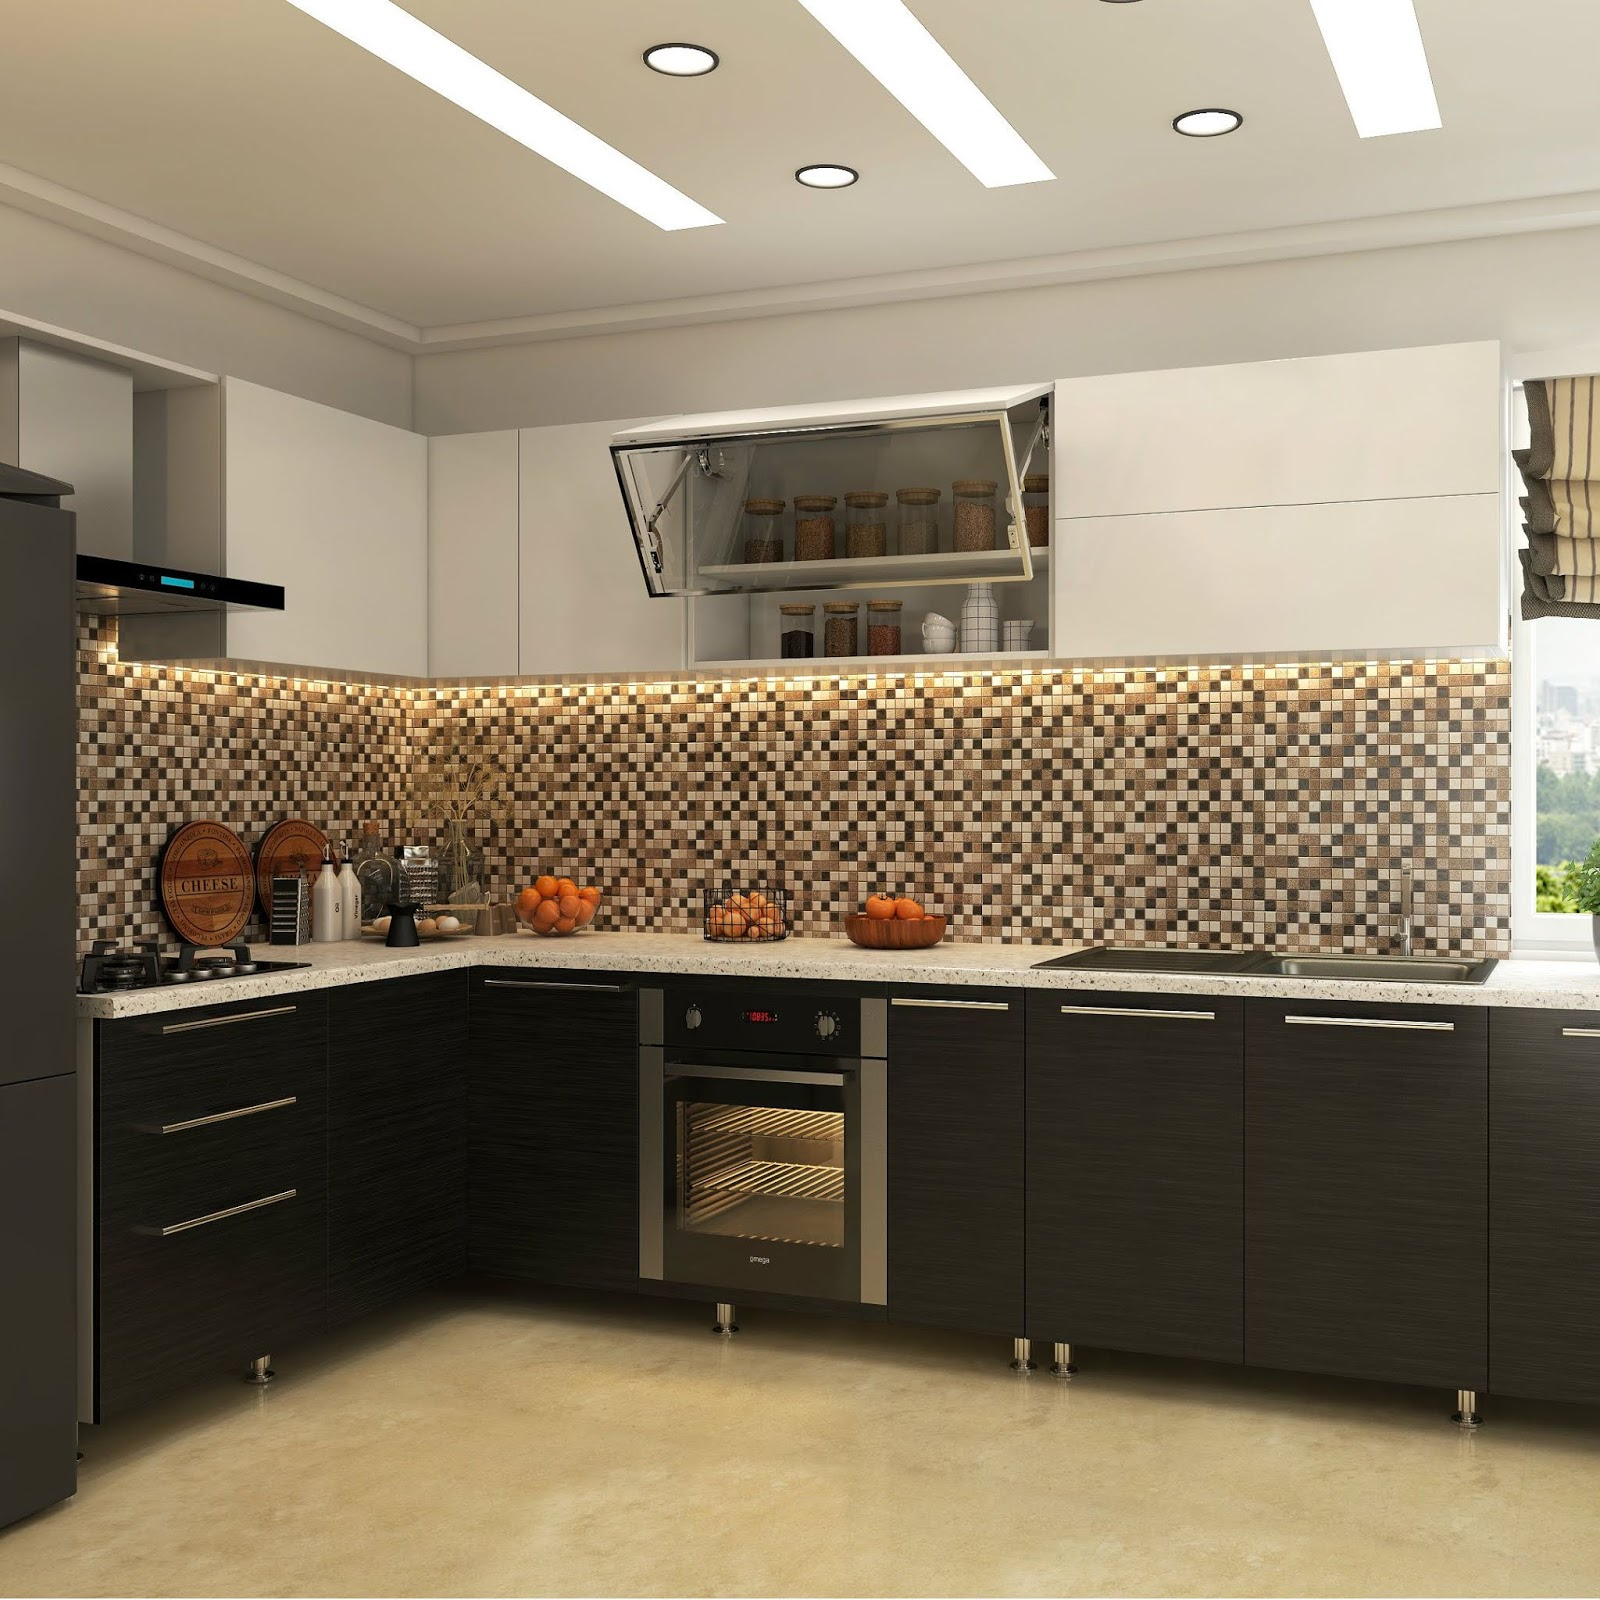 Modular Kitchen Upper Cabinets Vishu Interiors Low Cost Kitchen Cabinet Ideas